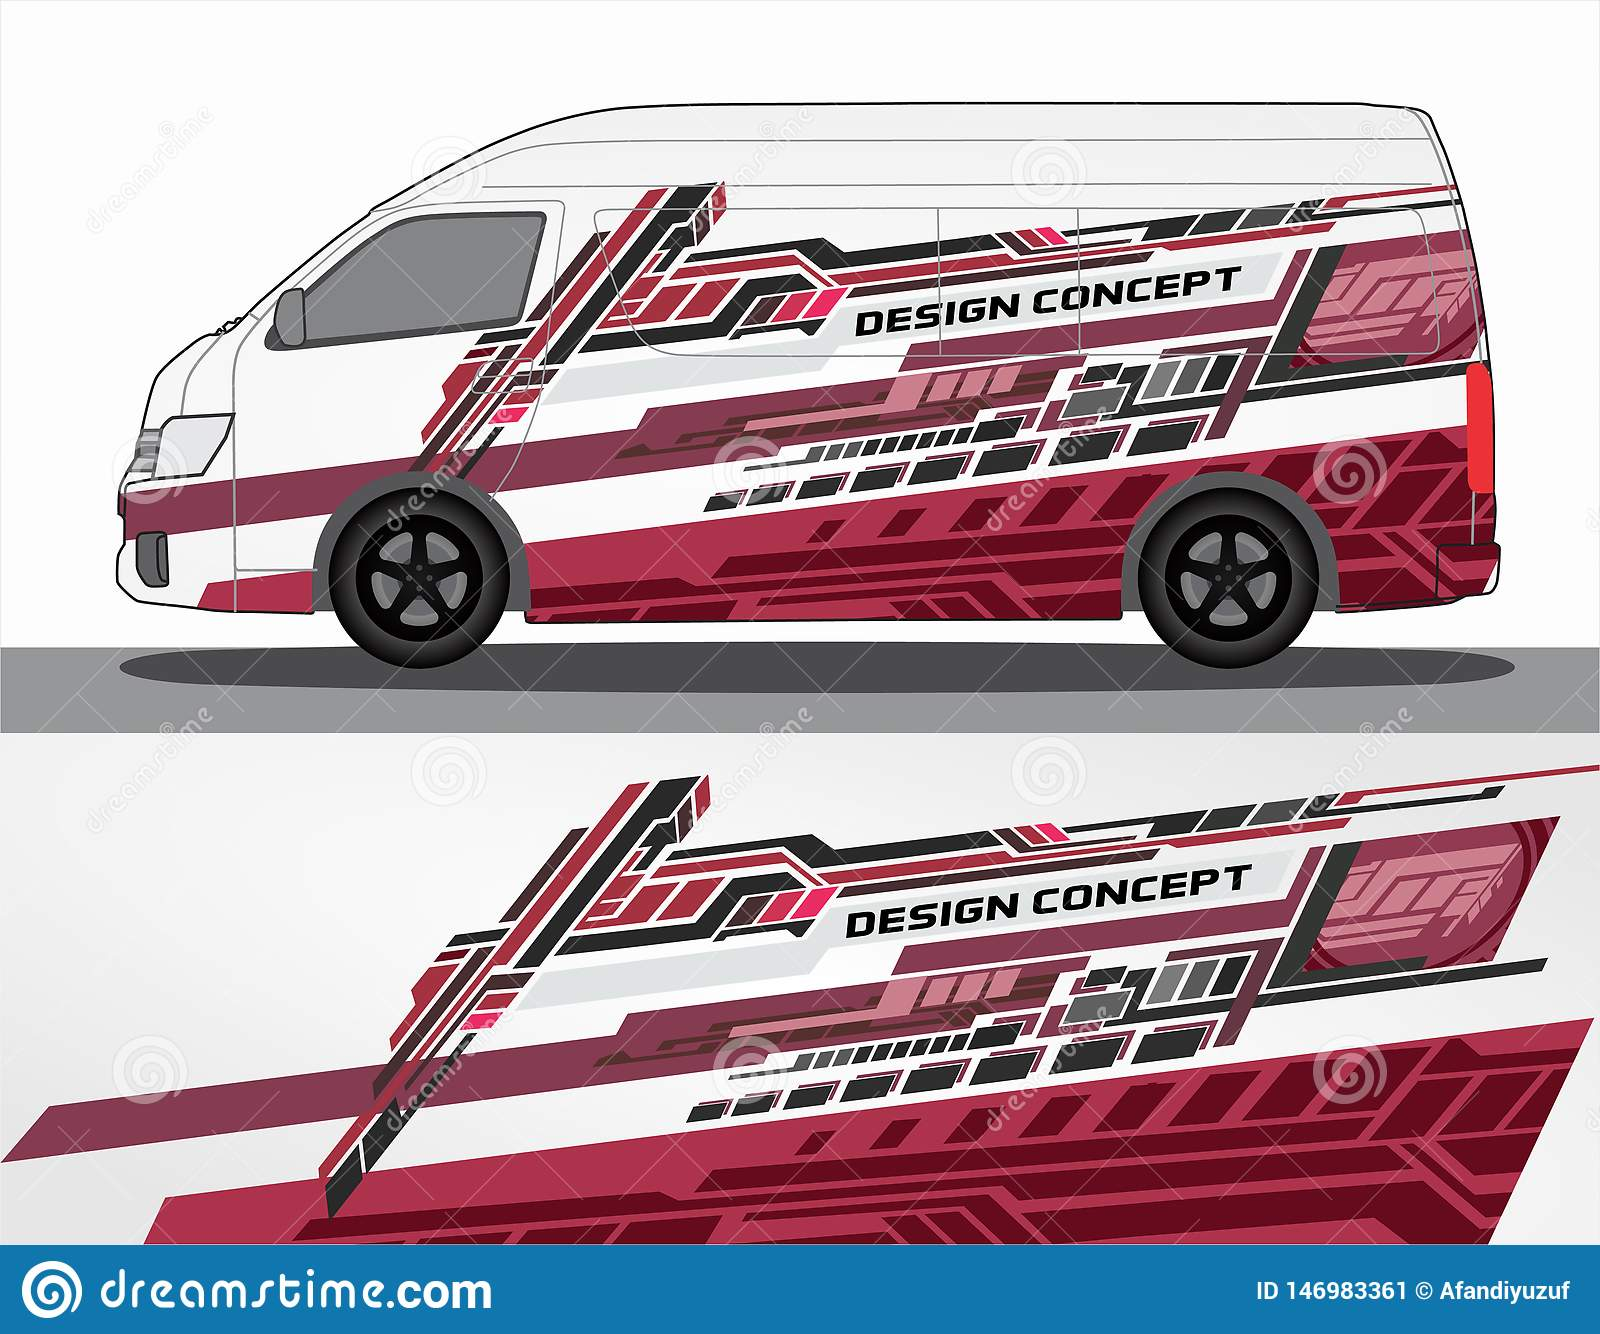 Vinyls Sticker Set Decals For Car Truck Mini Bus Modify Motorcycle Racing Vehicle Stock Vector Illustration Of Design Background 146983361